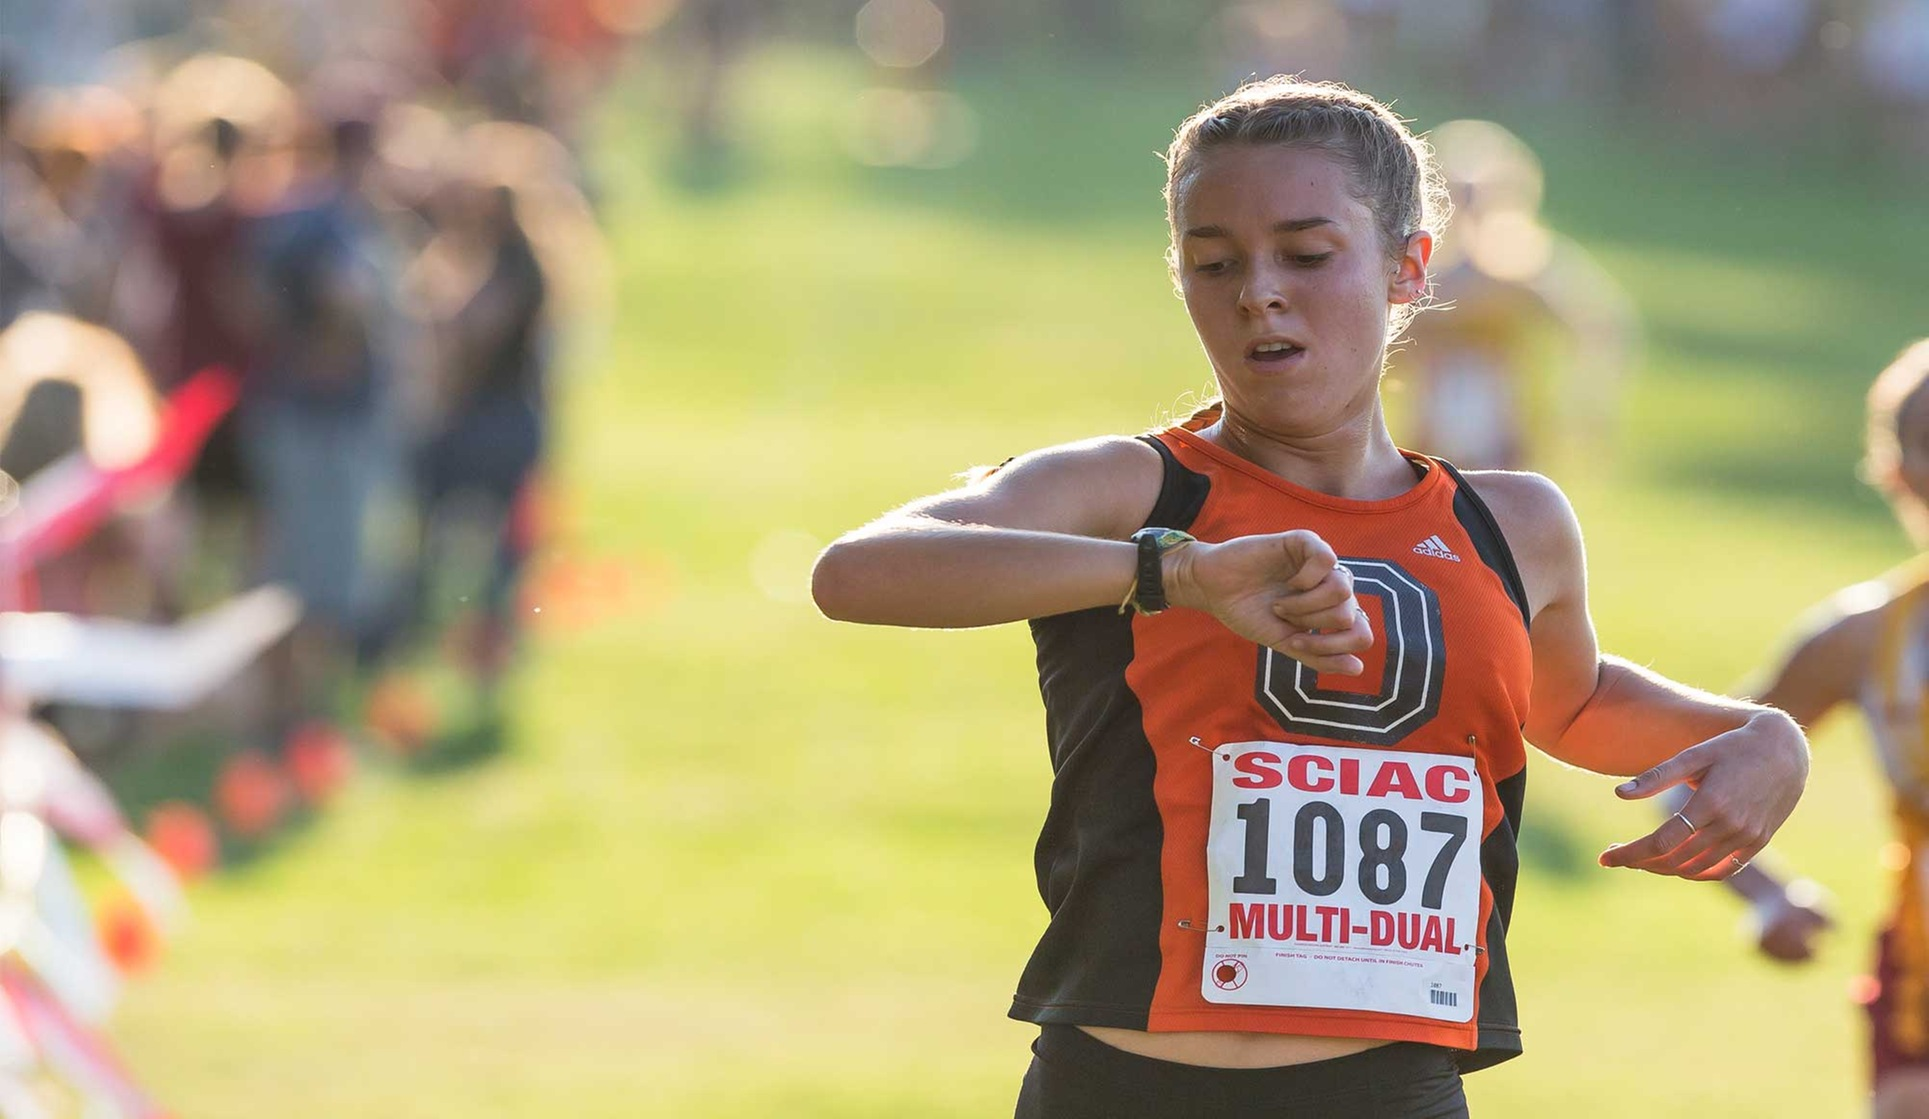 Oxy Finishes 12th at Pre-National Championships